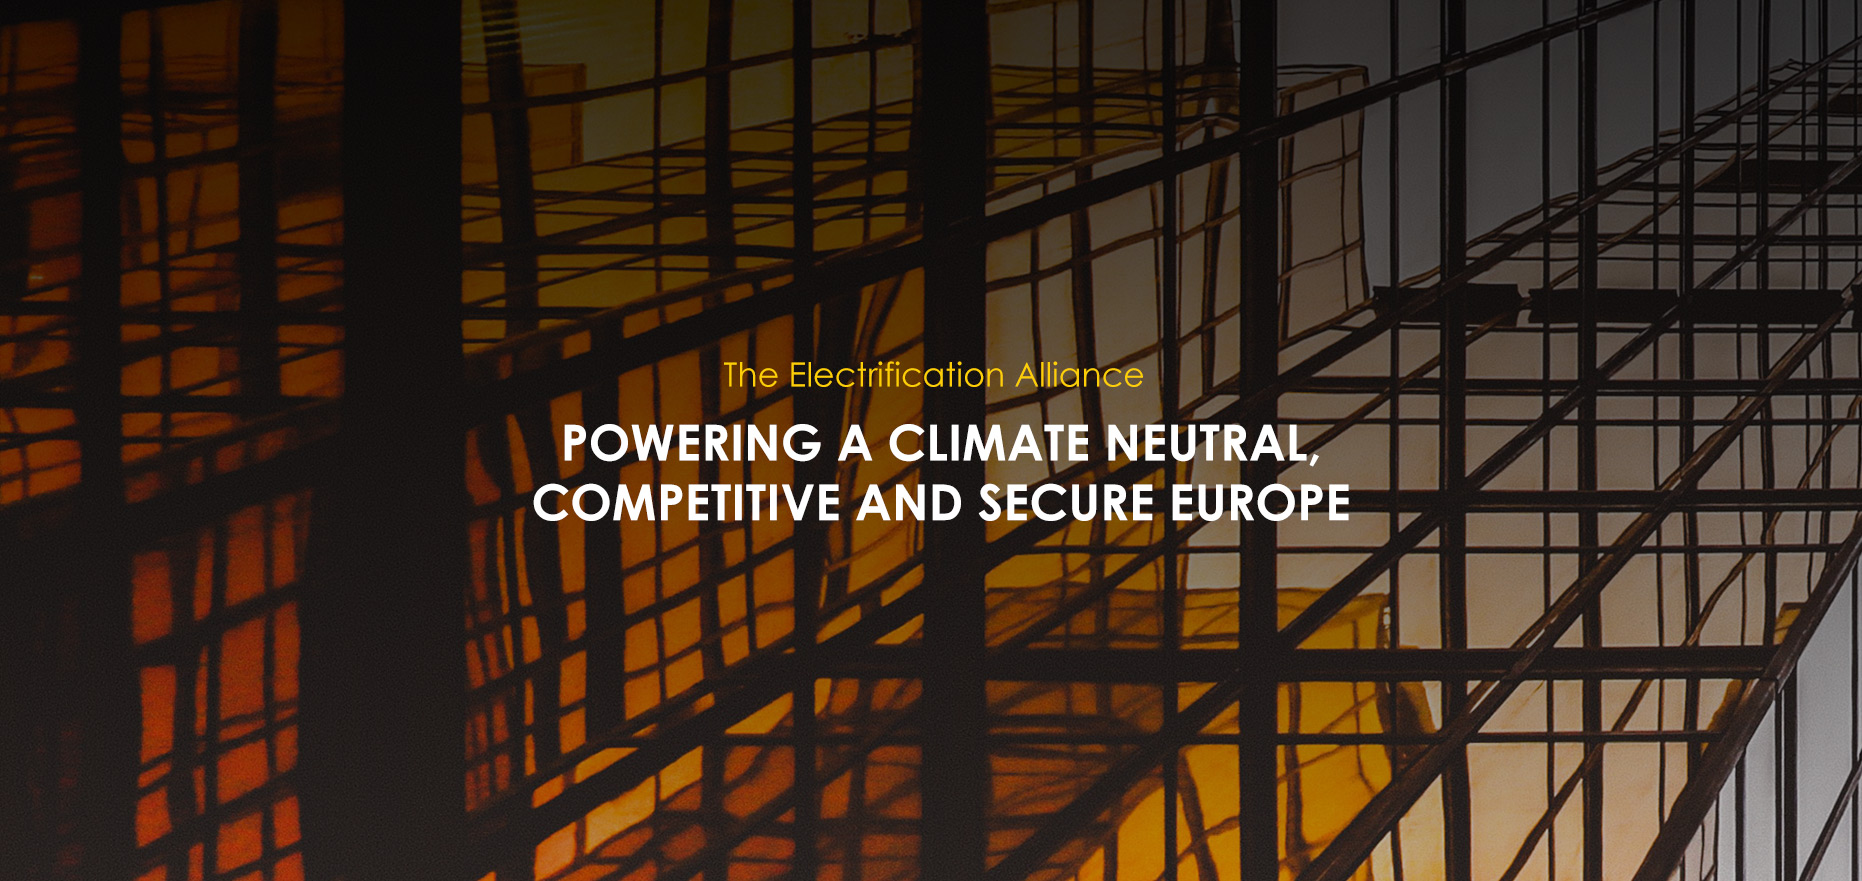 Powering a climate neutral, competitive and secure Europe